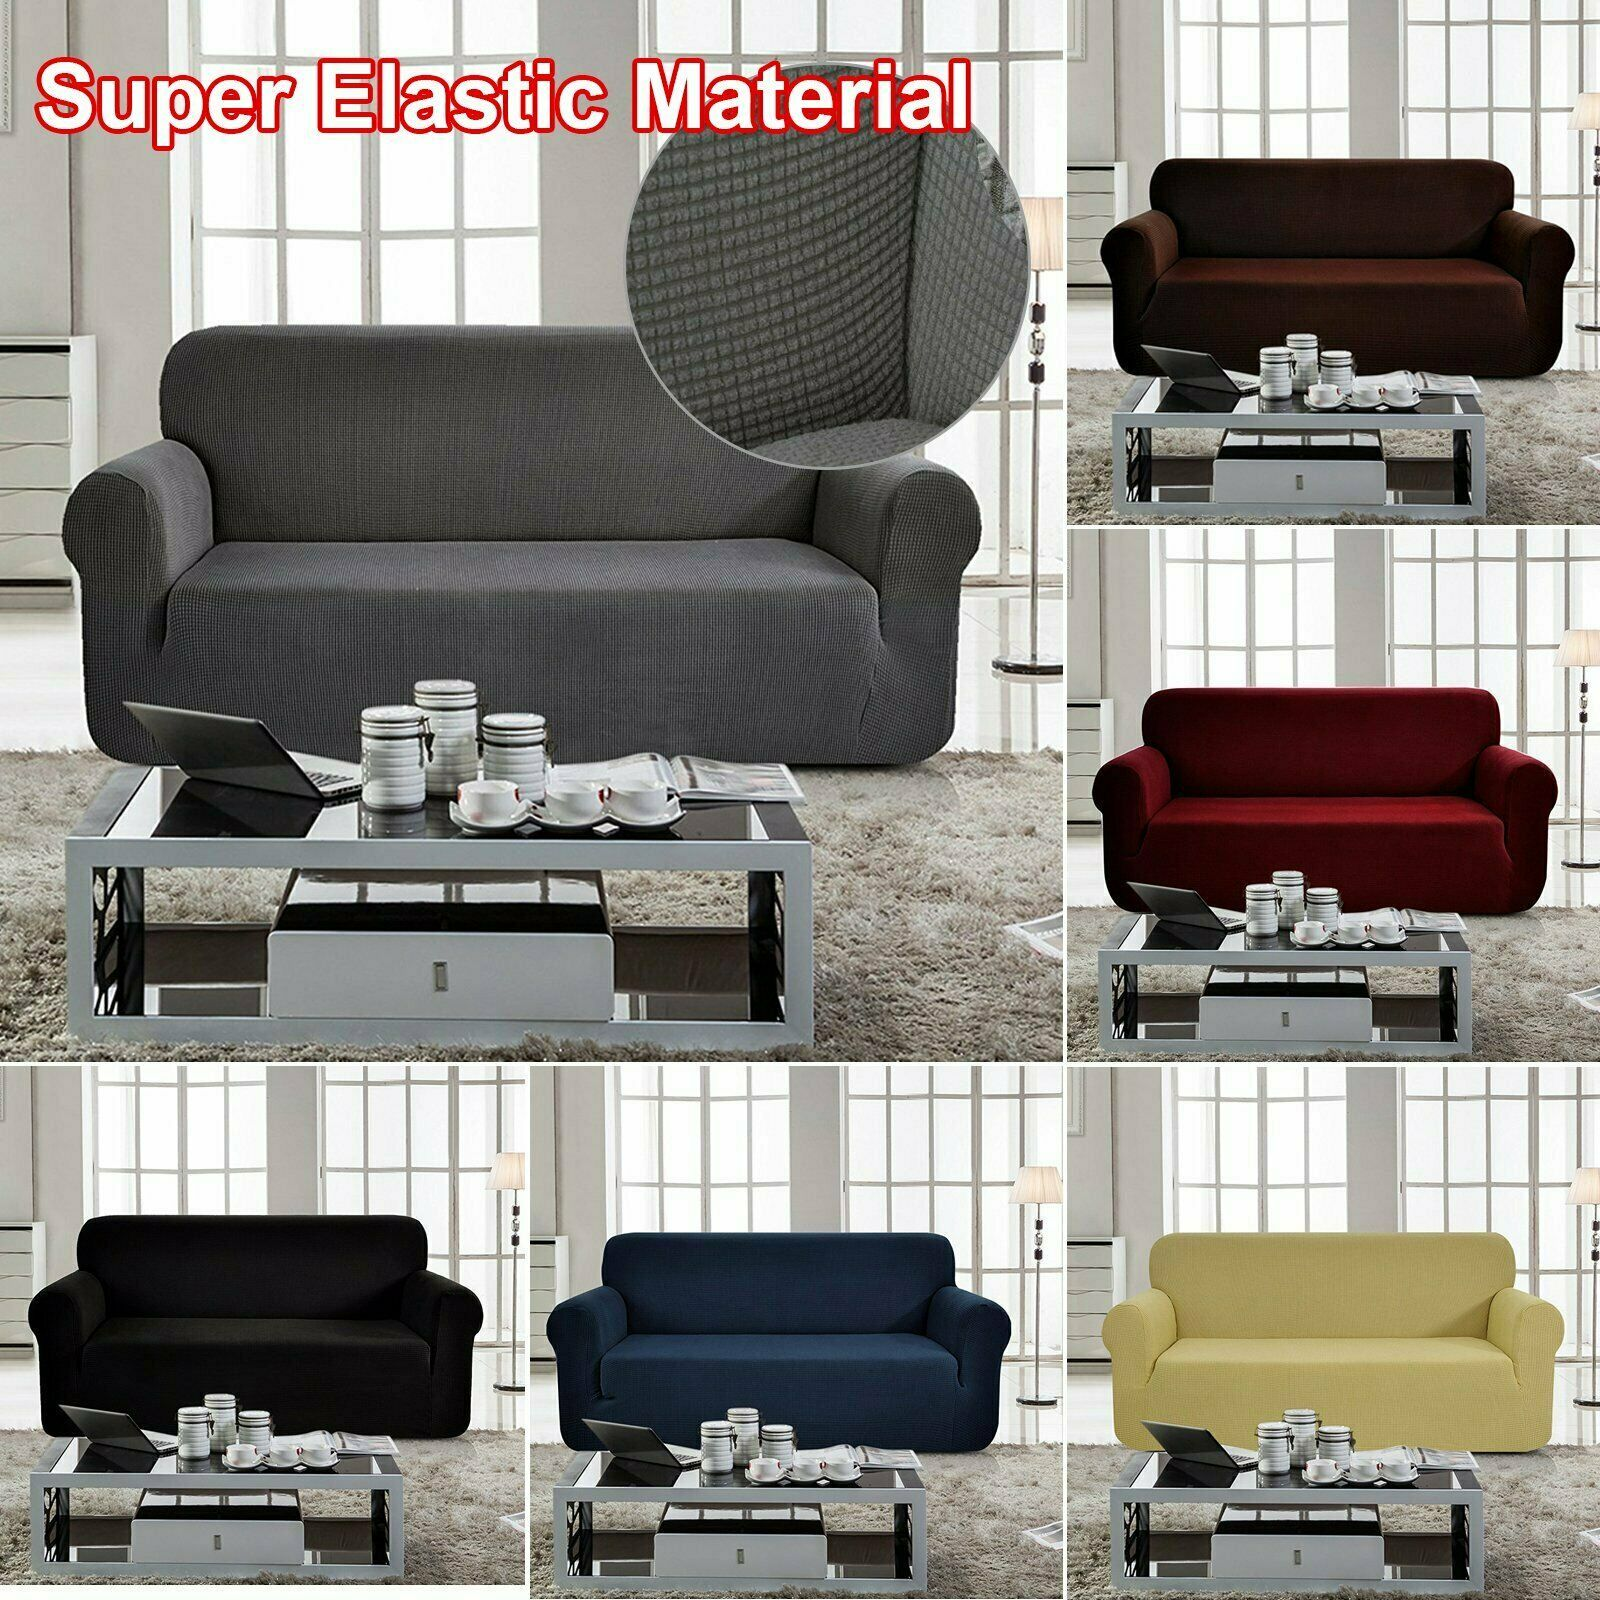 Stretch Sofa Couch Cover Chair Waffle Jacquard Protect Slipcover 1 4 Seaters Sofa Slipcover Idea Slipcovered Sofa Couch Covers Slipcovers Fabric Sofa Cover